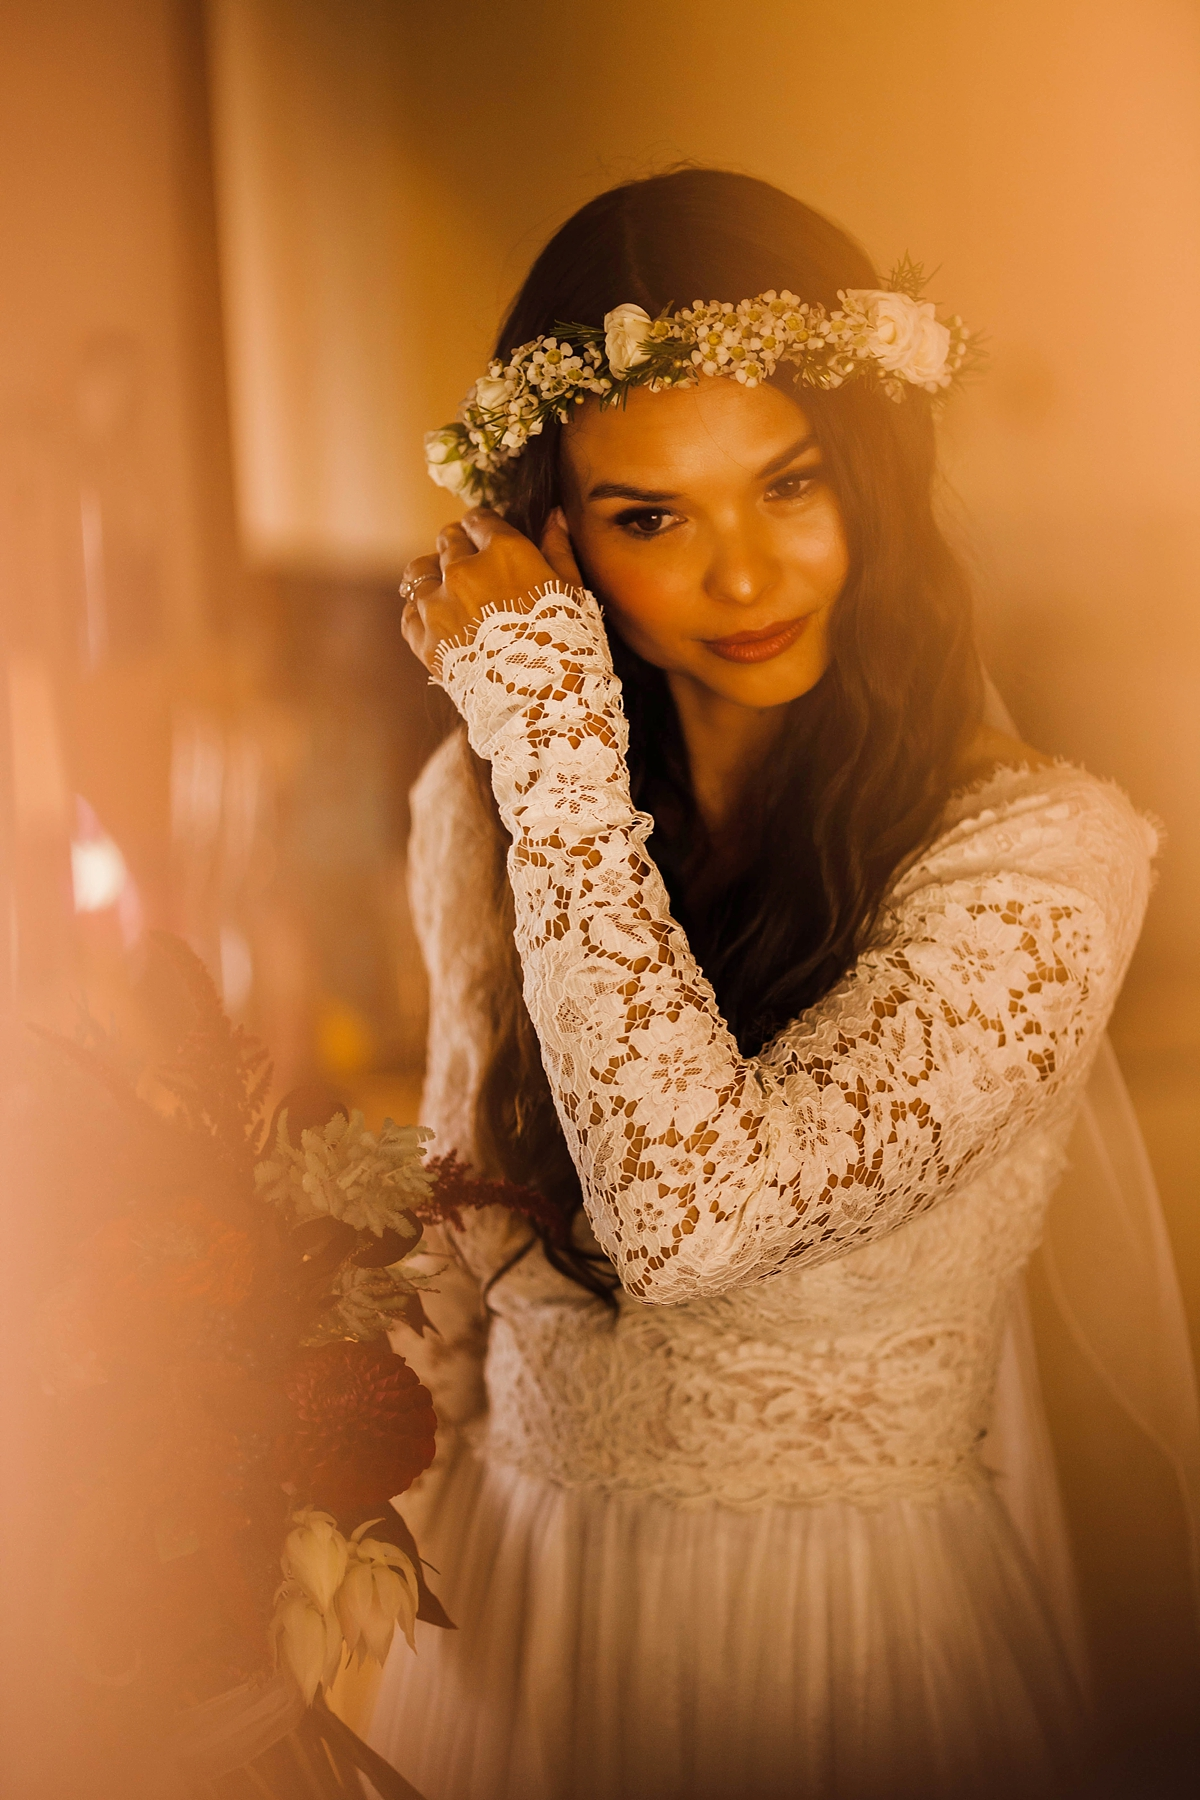 6d148d771968d Win Your Wedding Photography By Claudia Rose Carter Worth £1700 ...